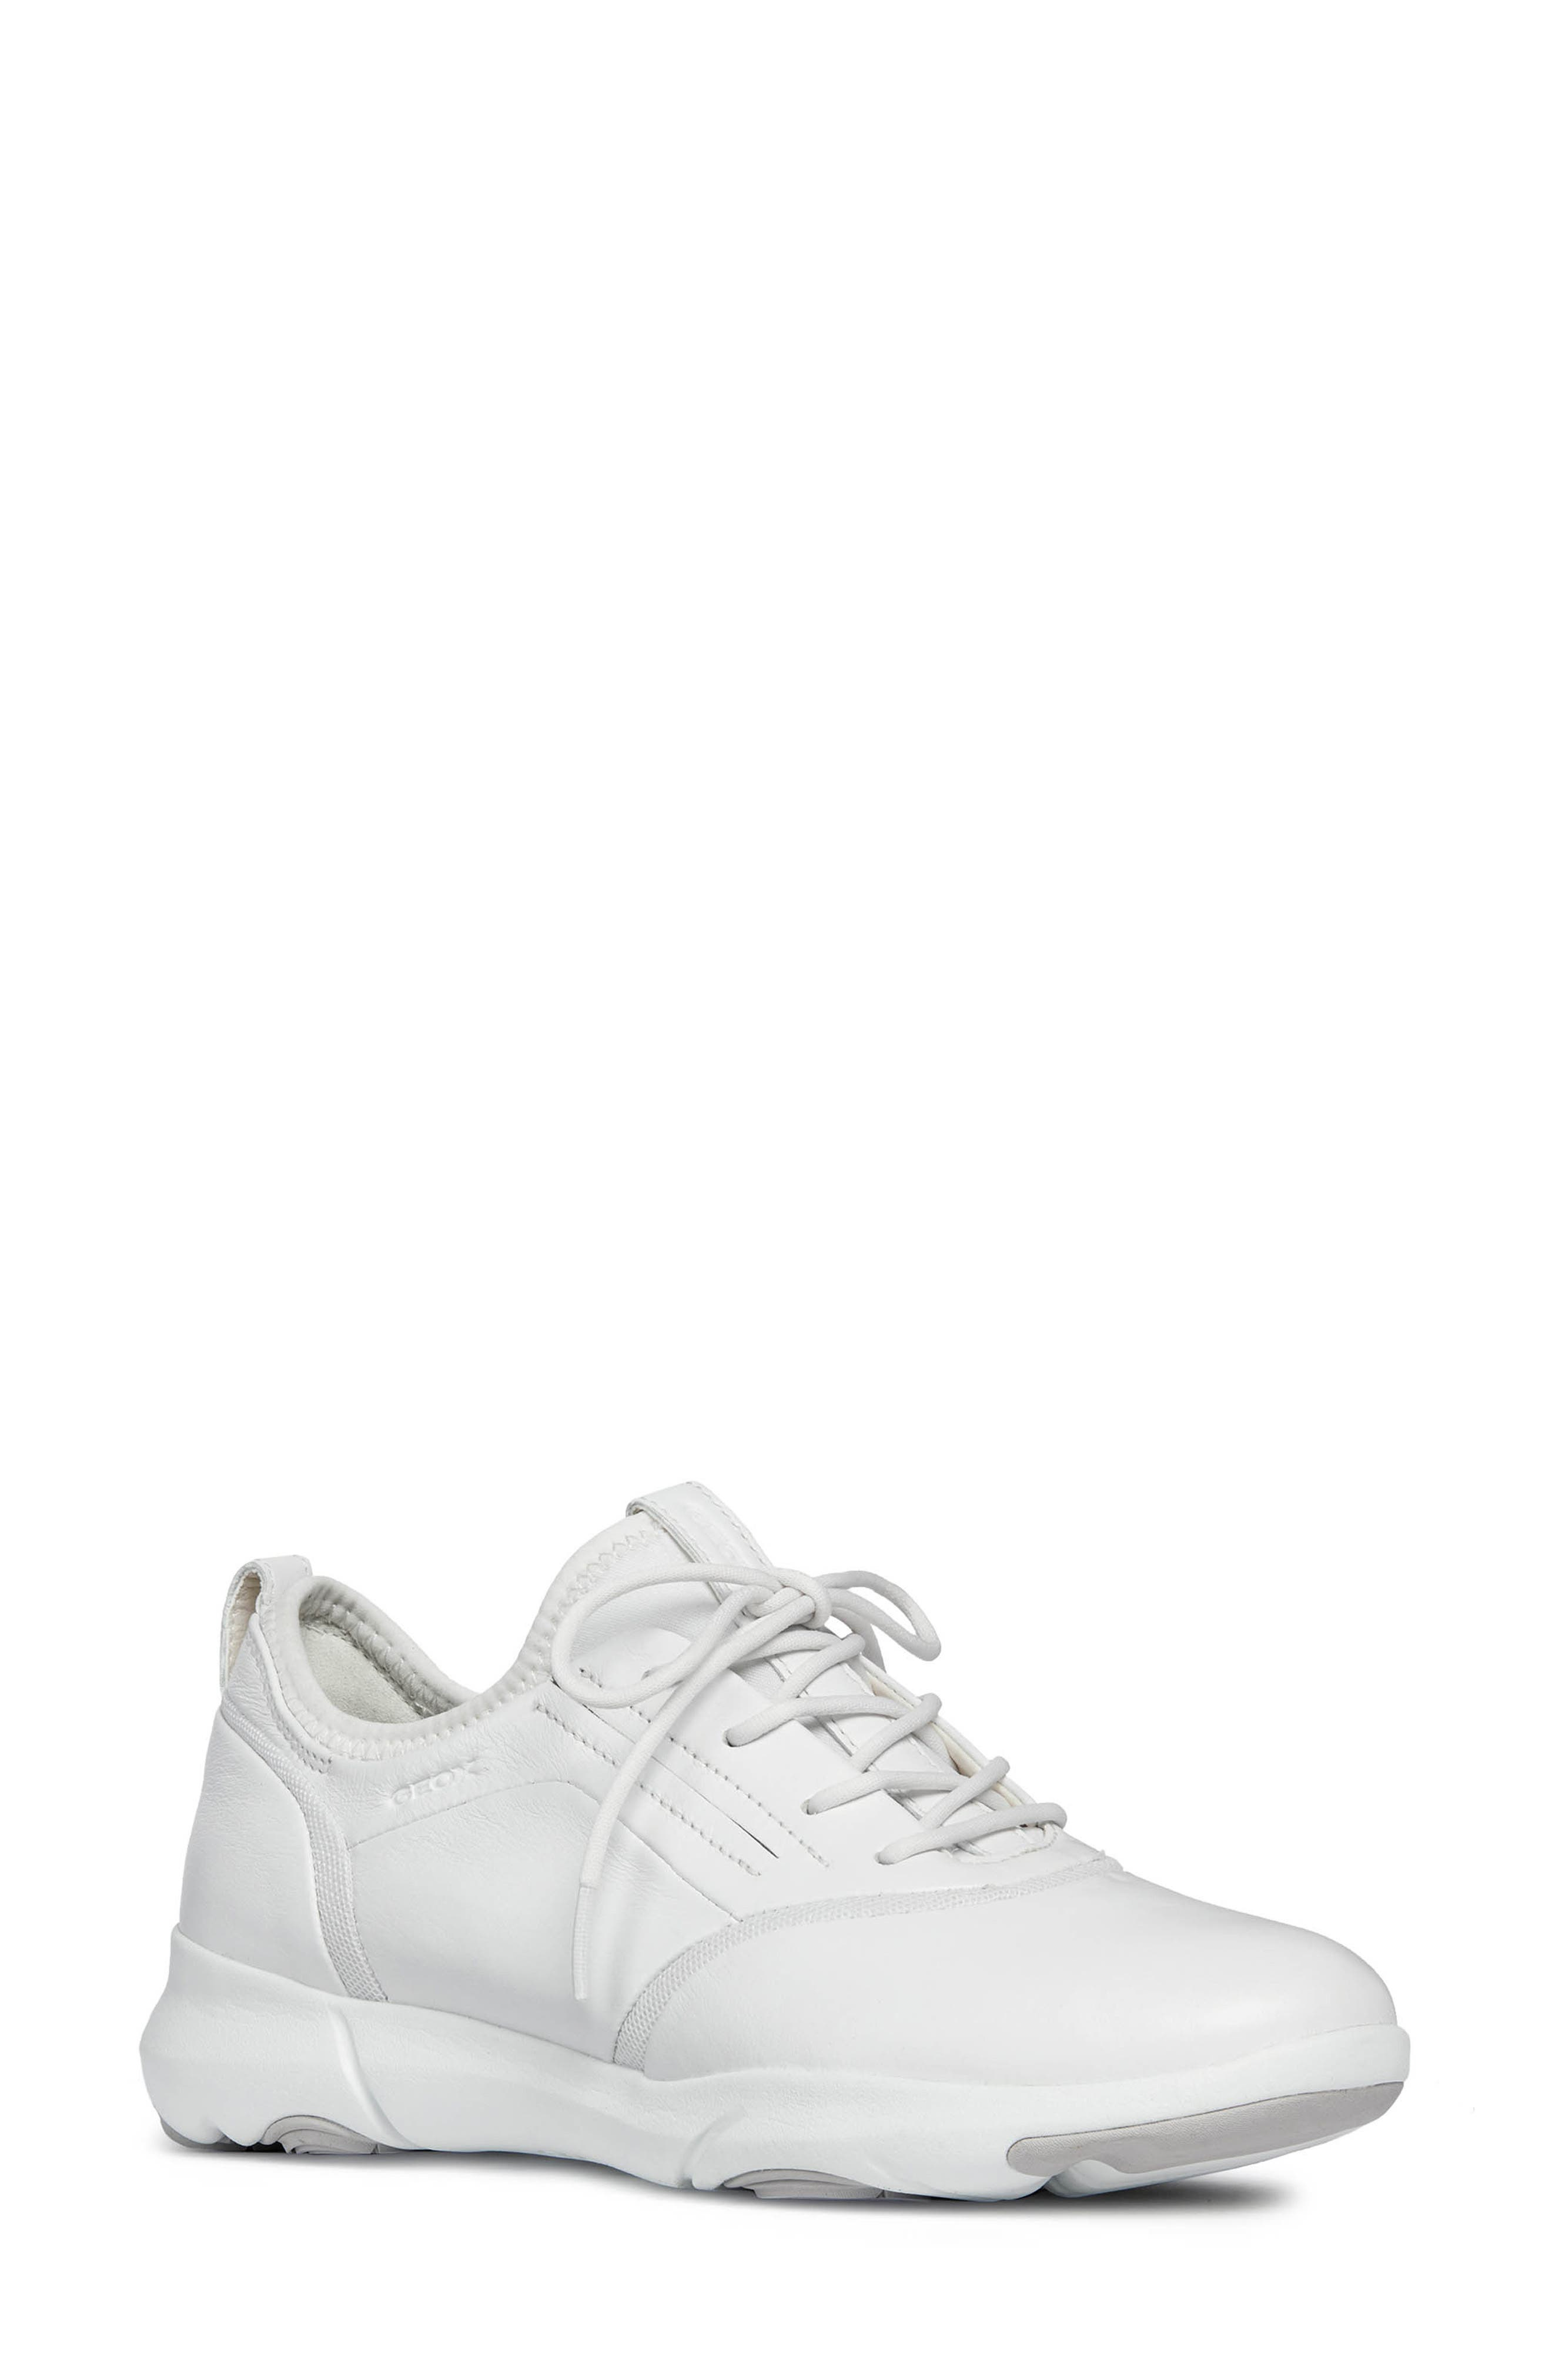 Nebula S 2 Low Top Sneaker,                             Main thumbnail 1, color,                             WHITE LEATHER